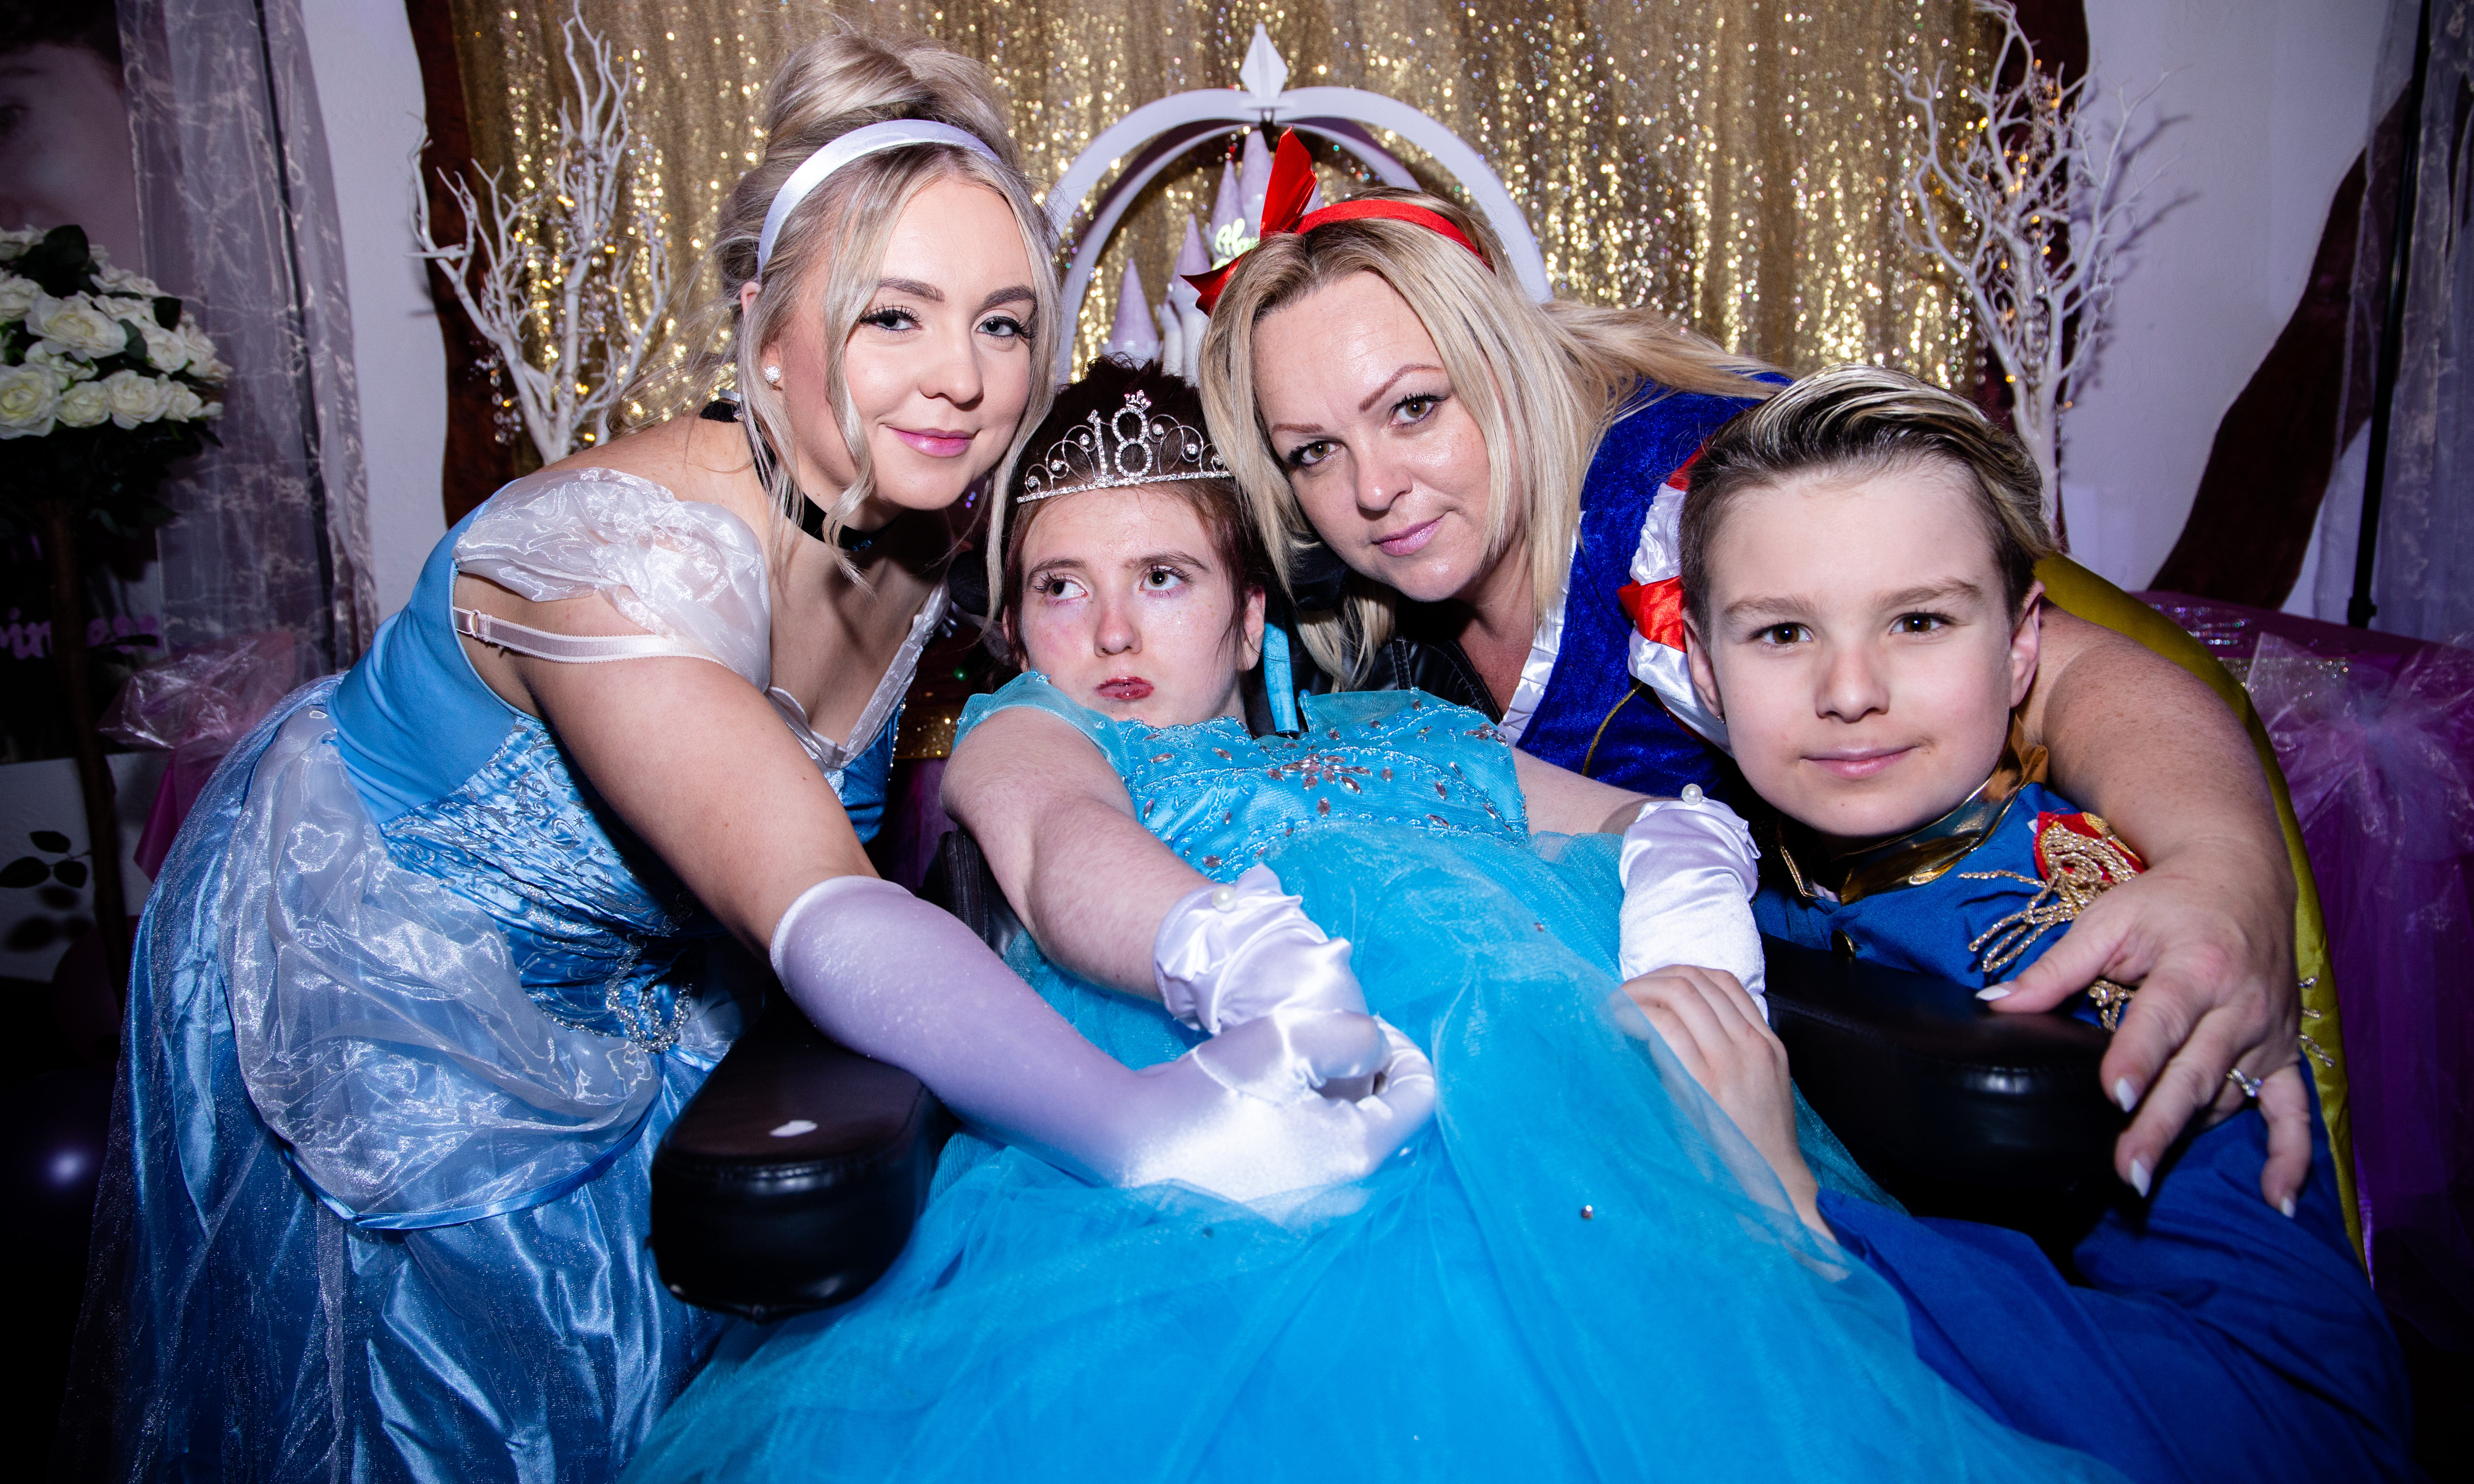 Morgan Doyle with Mum Michelle Dunnill at the party. Pic by Jarek Szaranek Photography